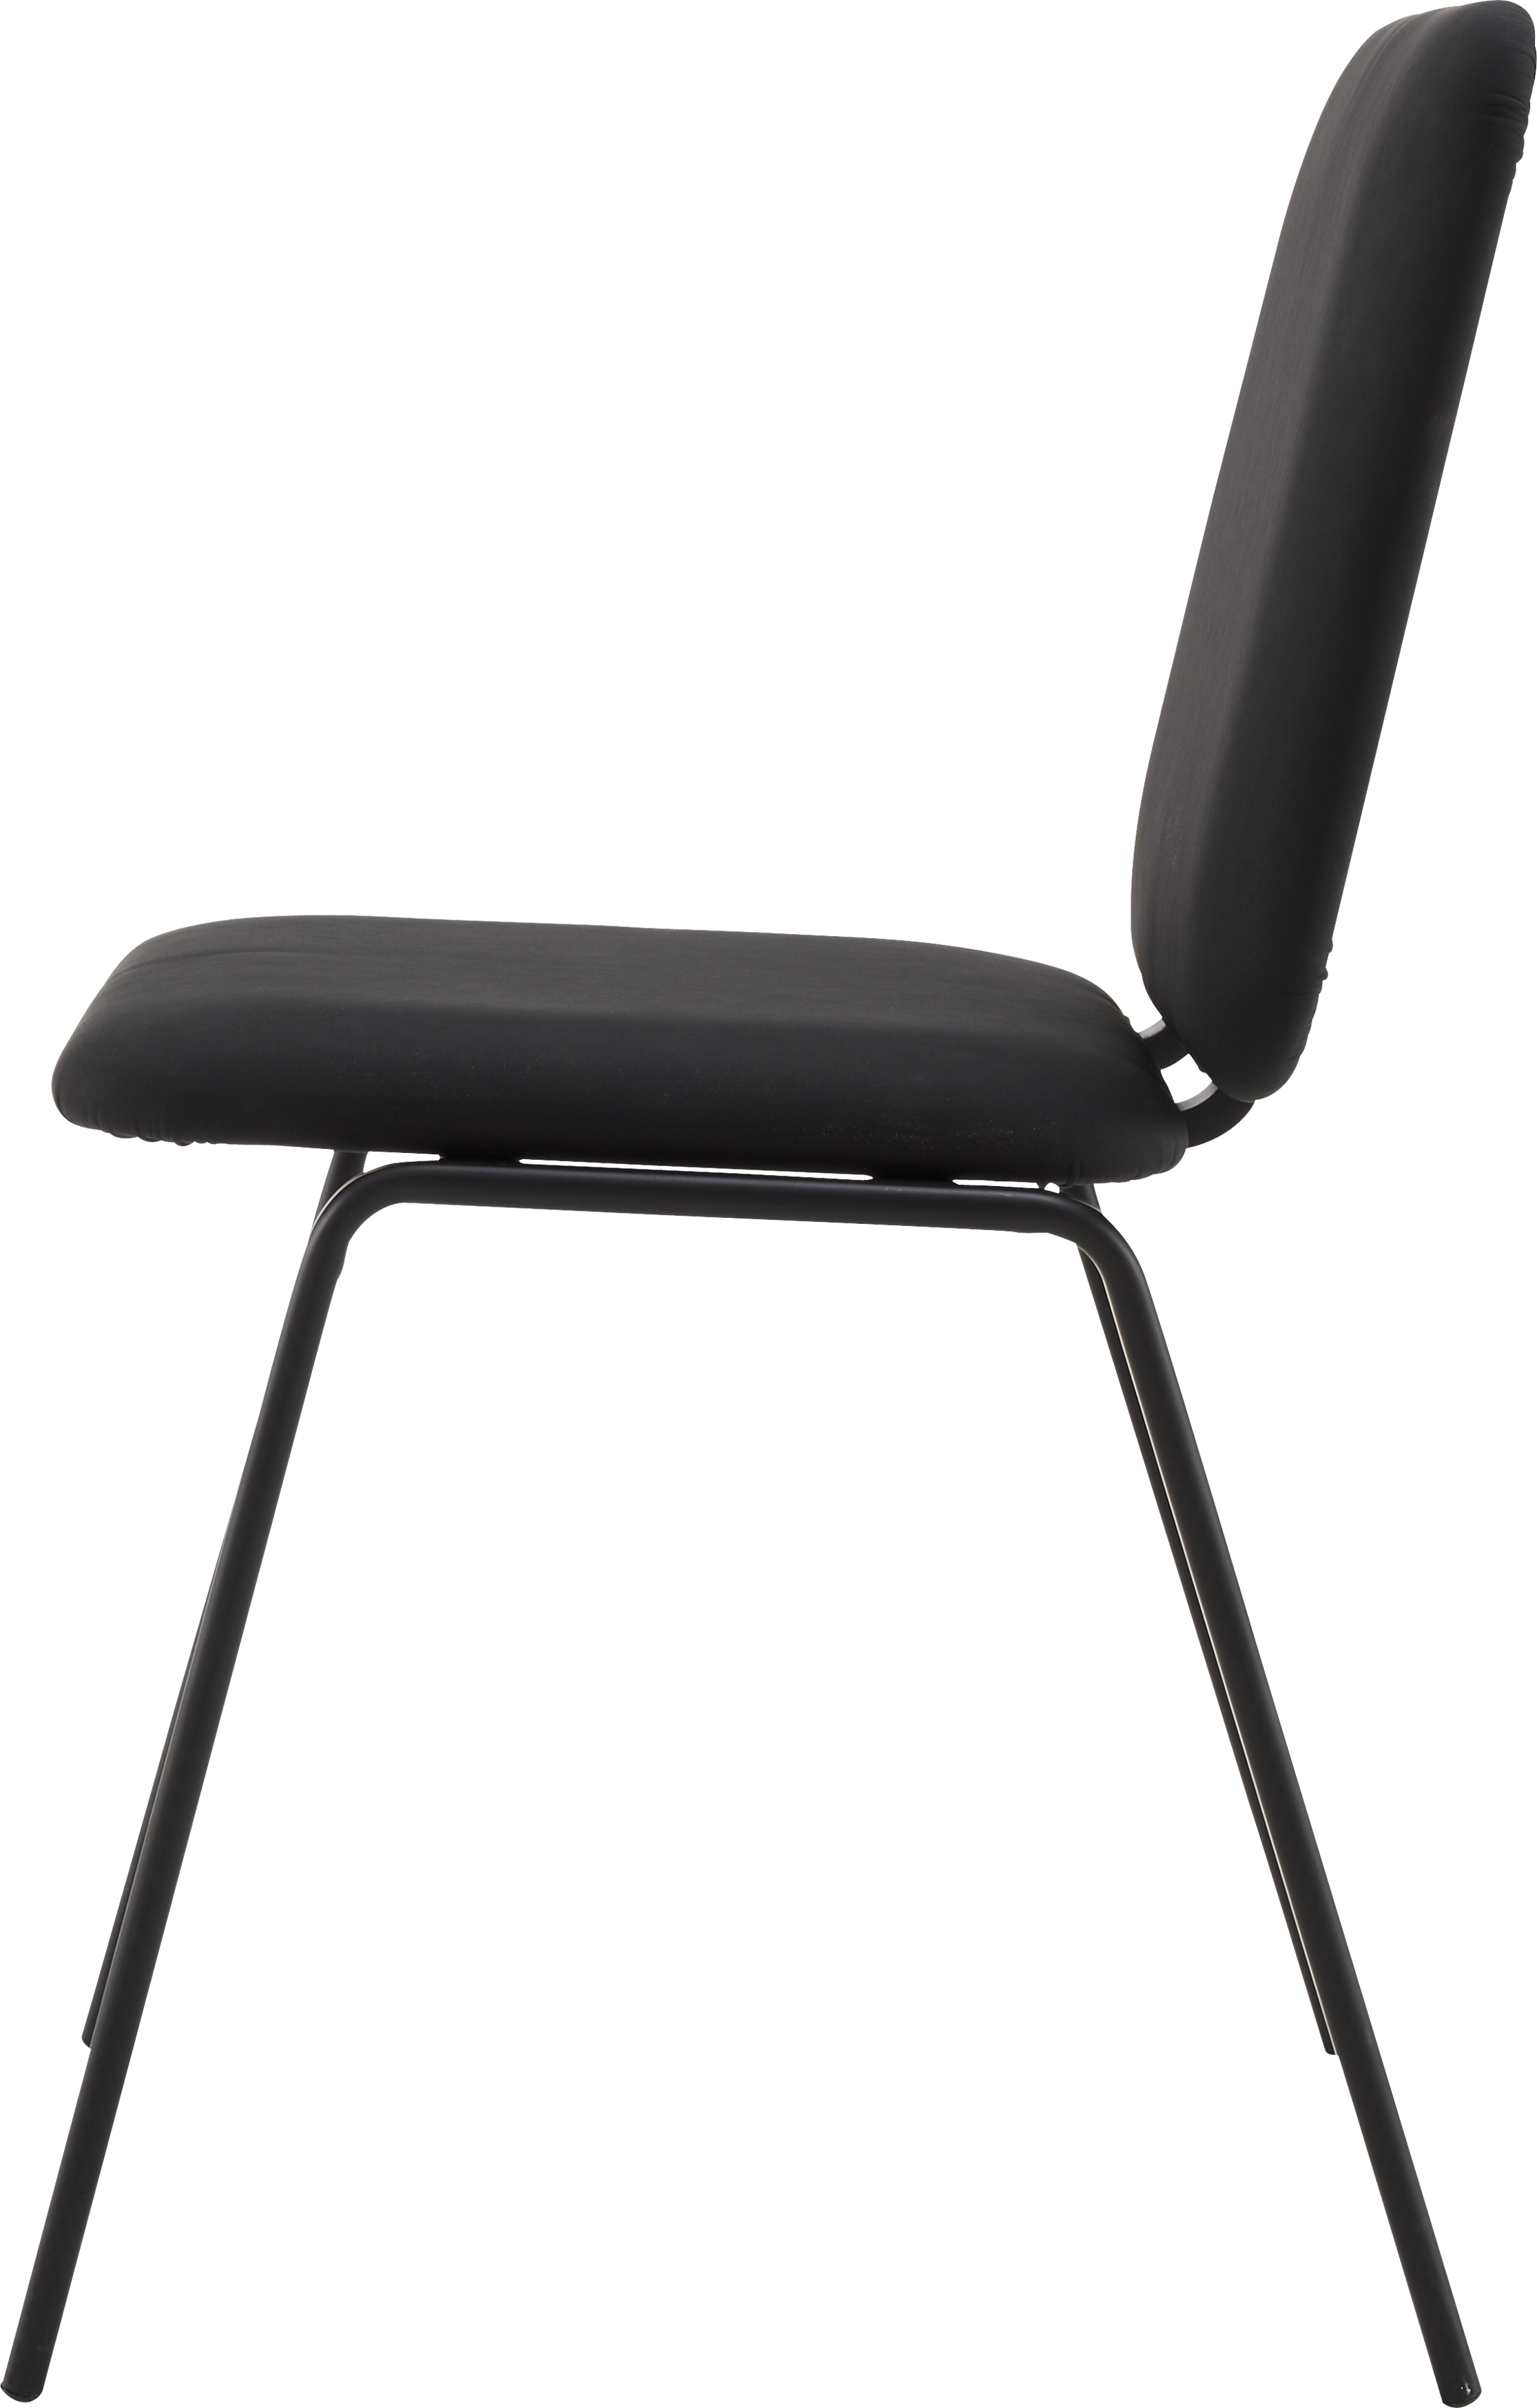 Chair PNG Image   PurePNG | Free Transparent CC0 PNG Image Library